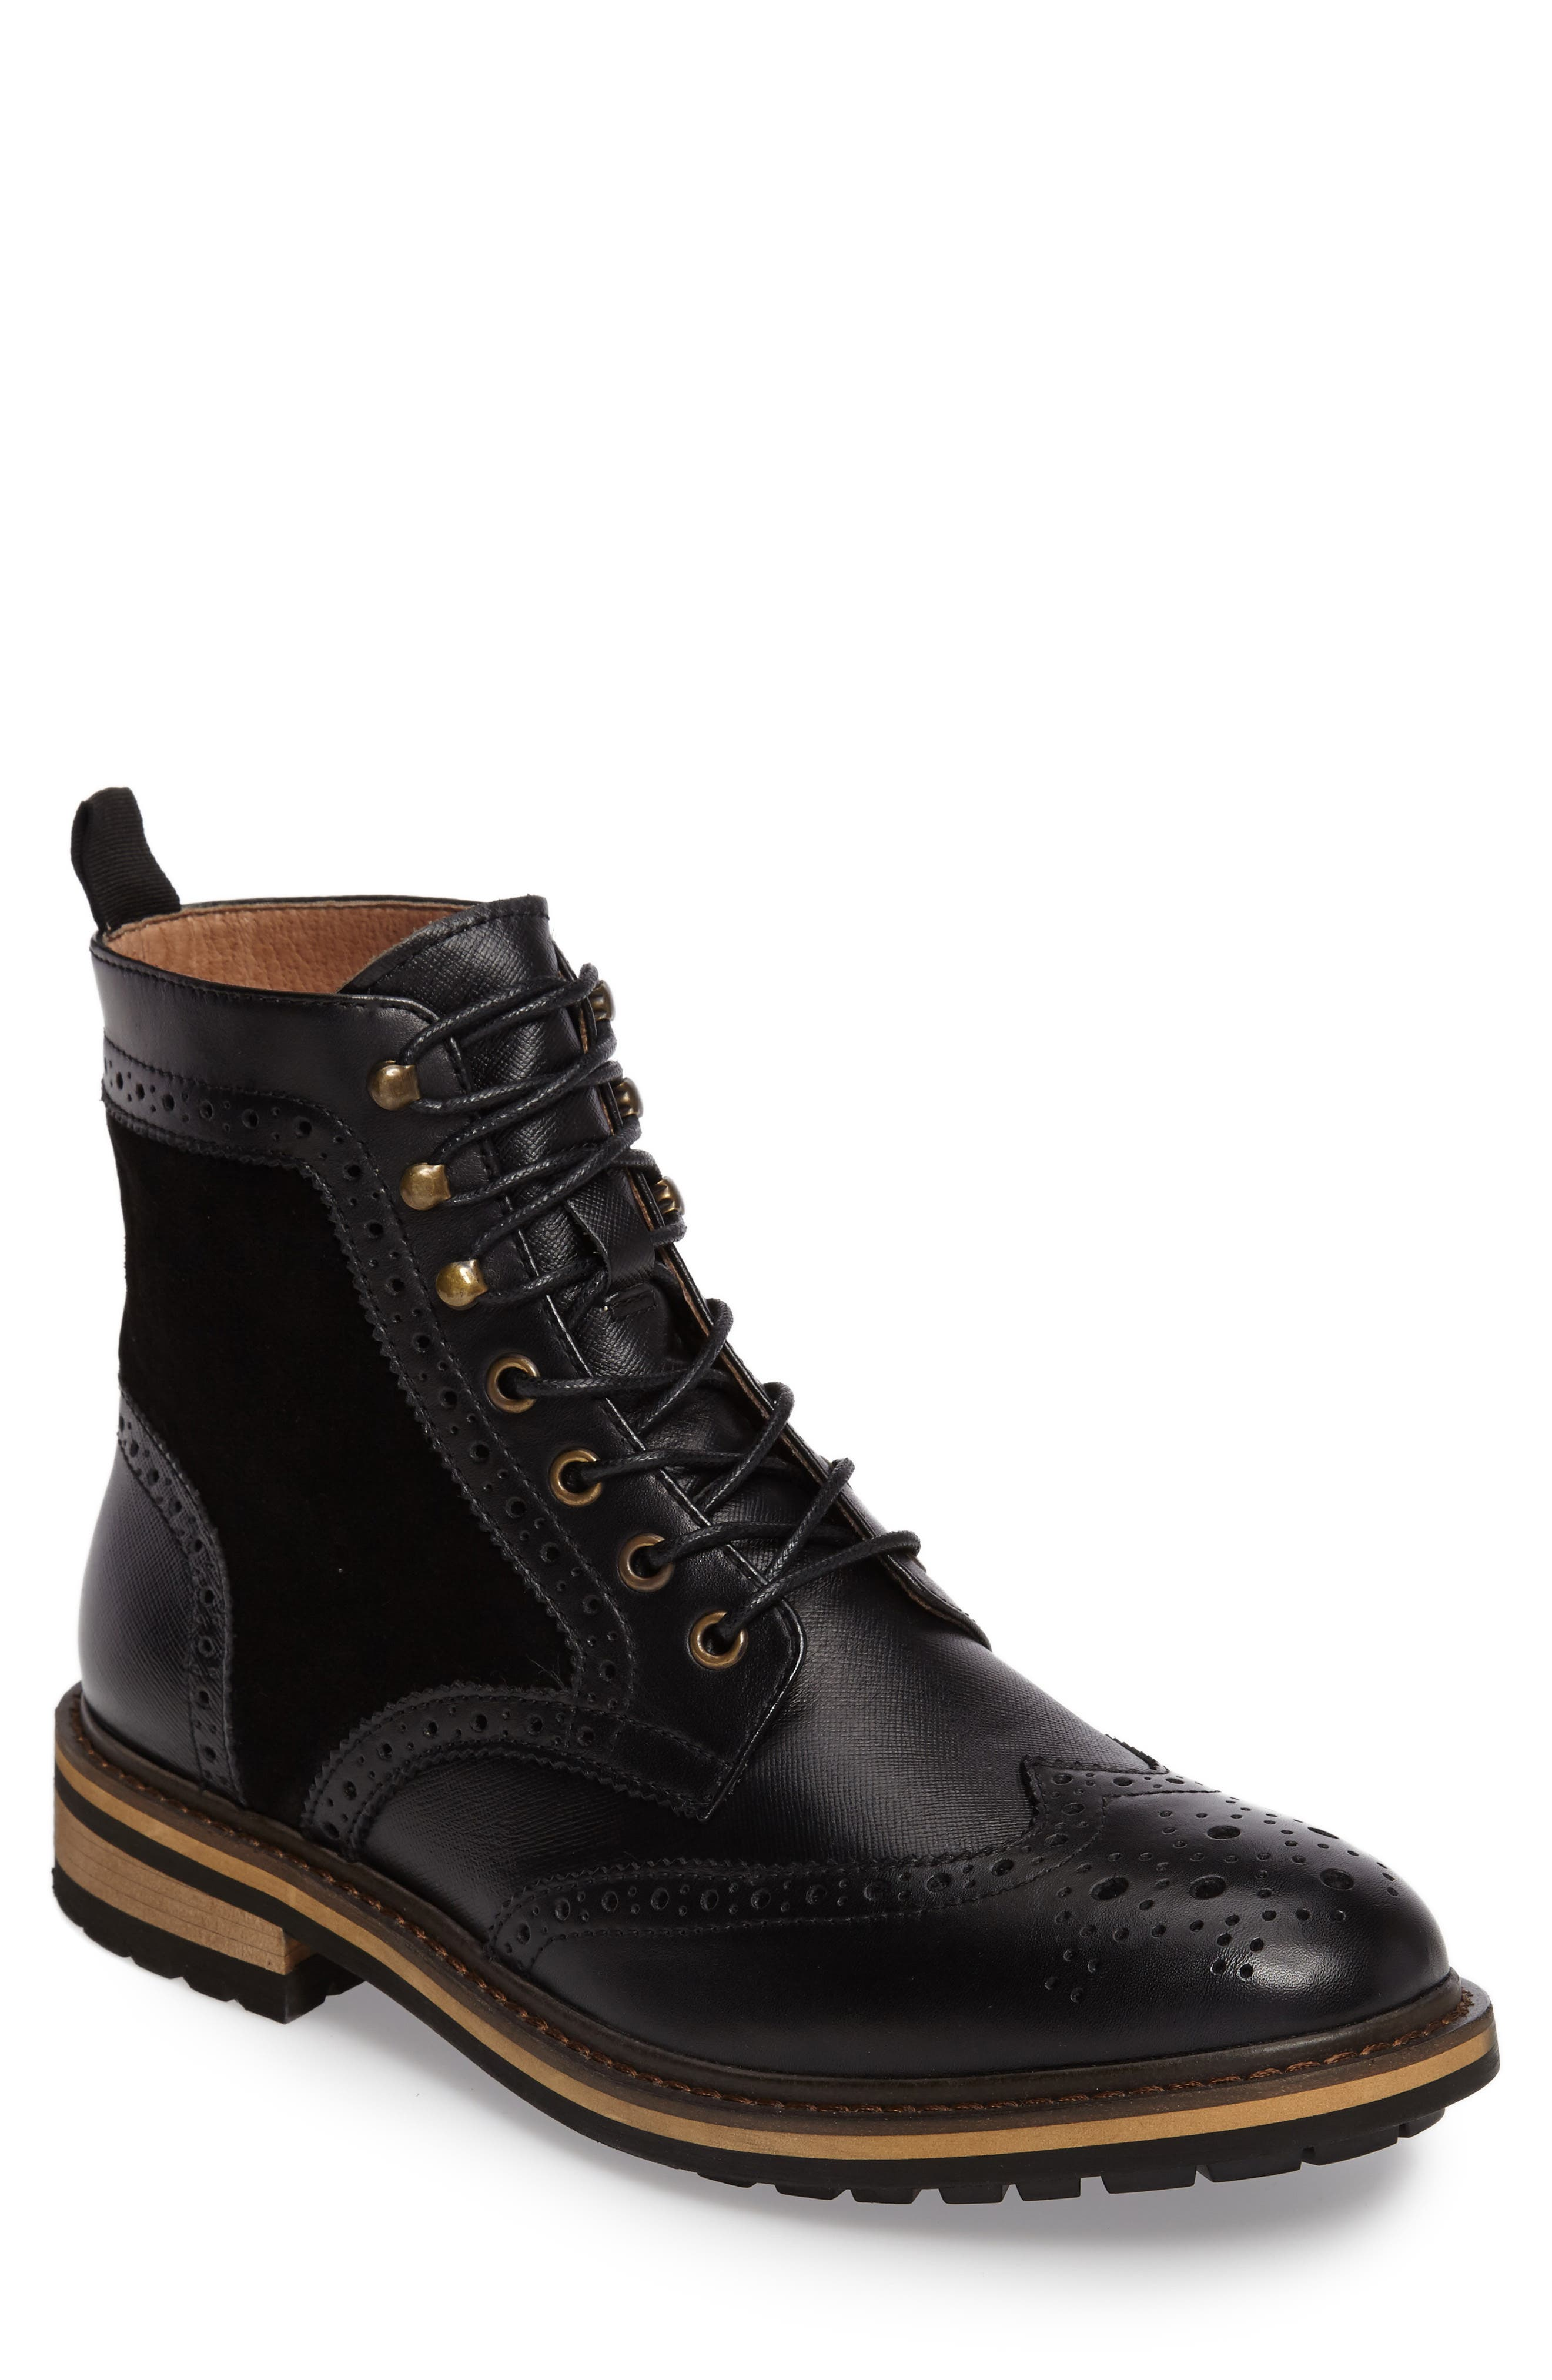 Grange Wingtip Boot,                         Main,                         color, 001